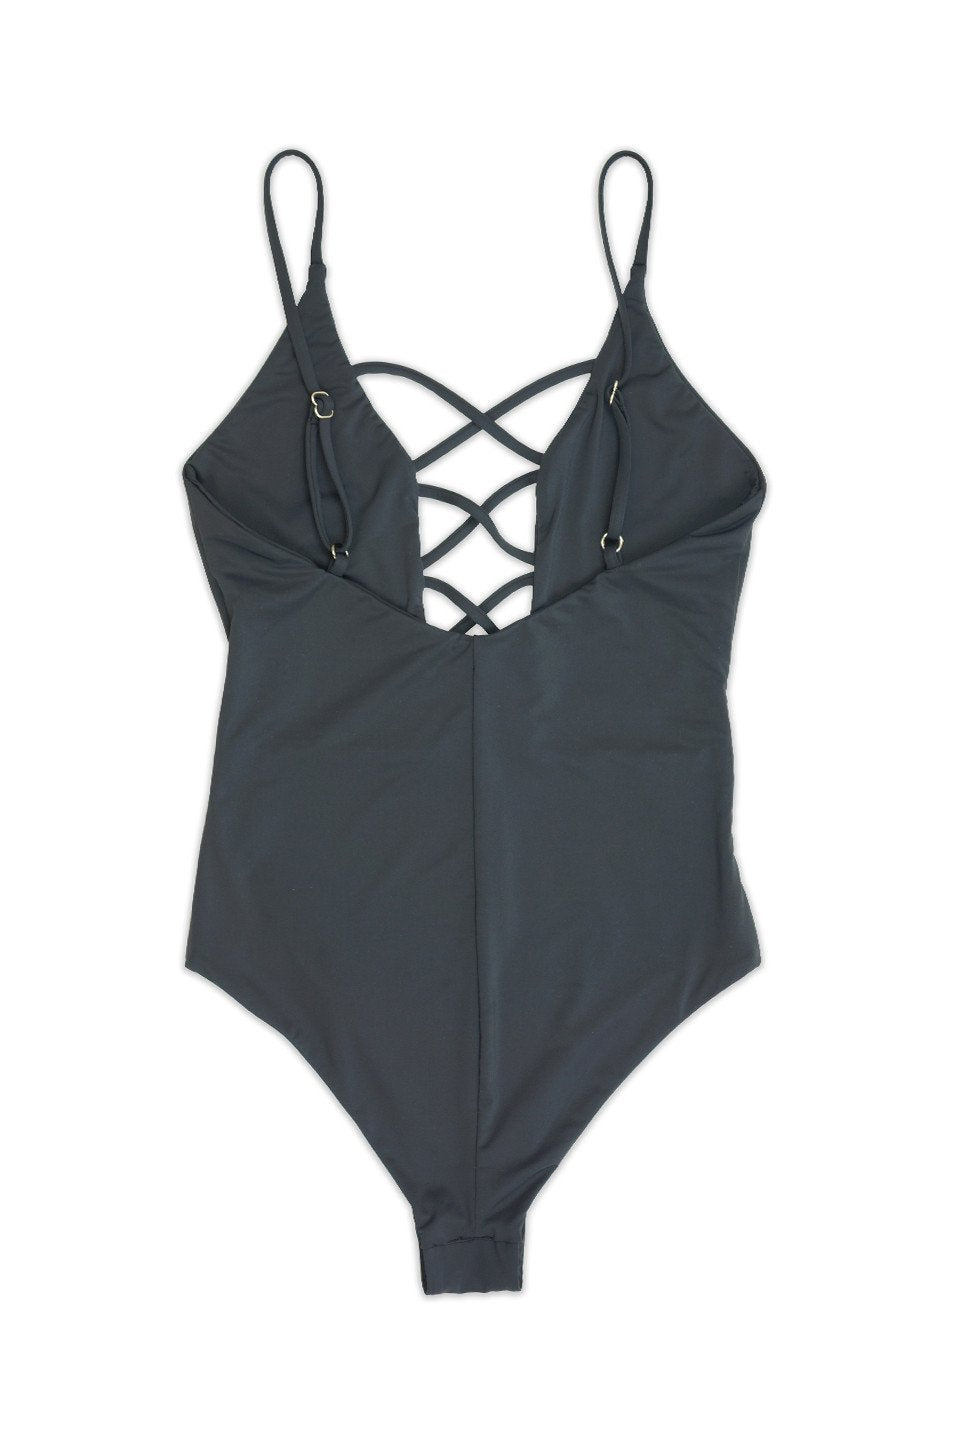 Black one piece with criss cross front detail and cheeky bottom BIKINIbox dippin daisy